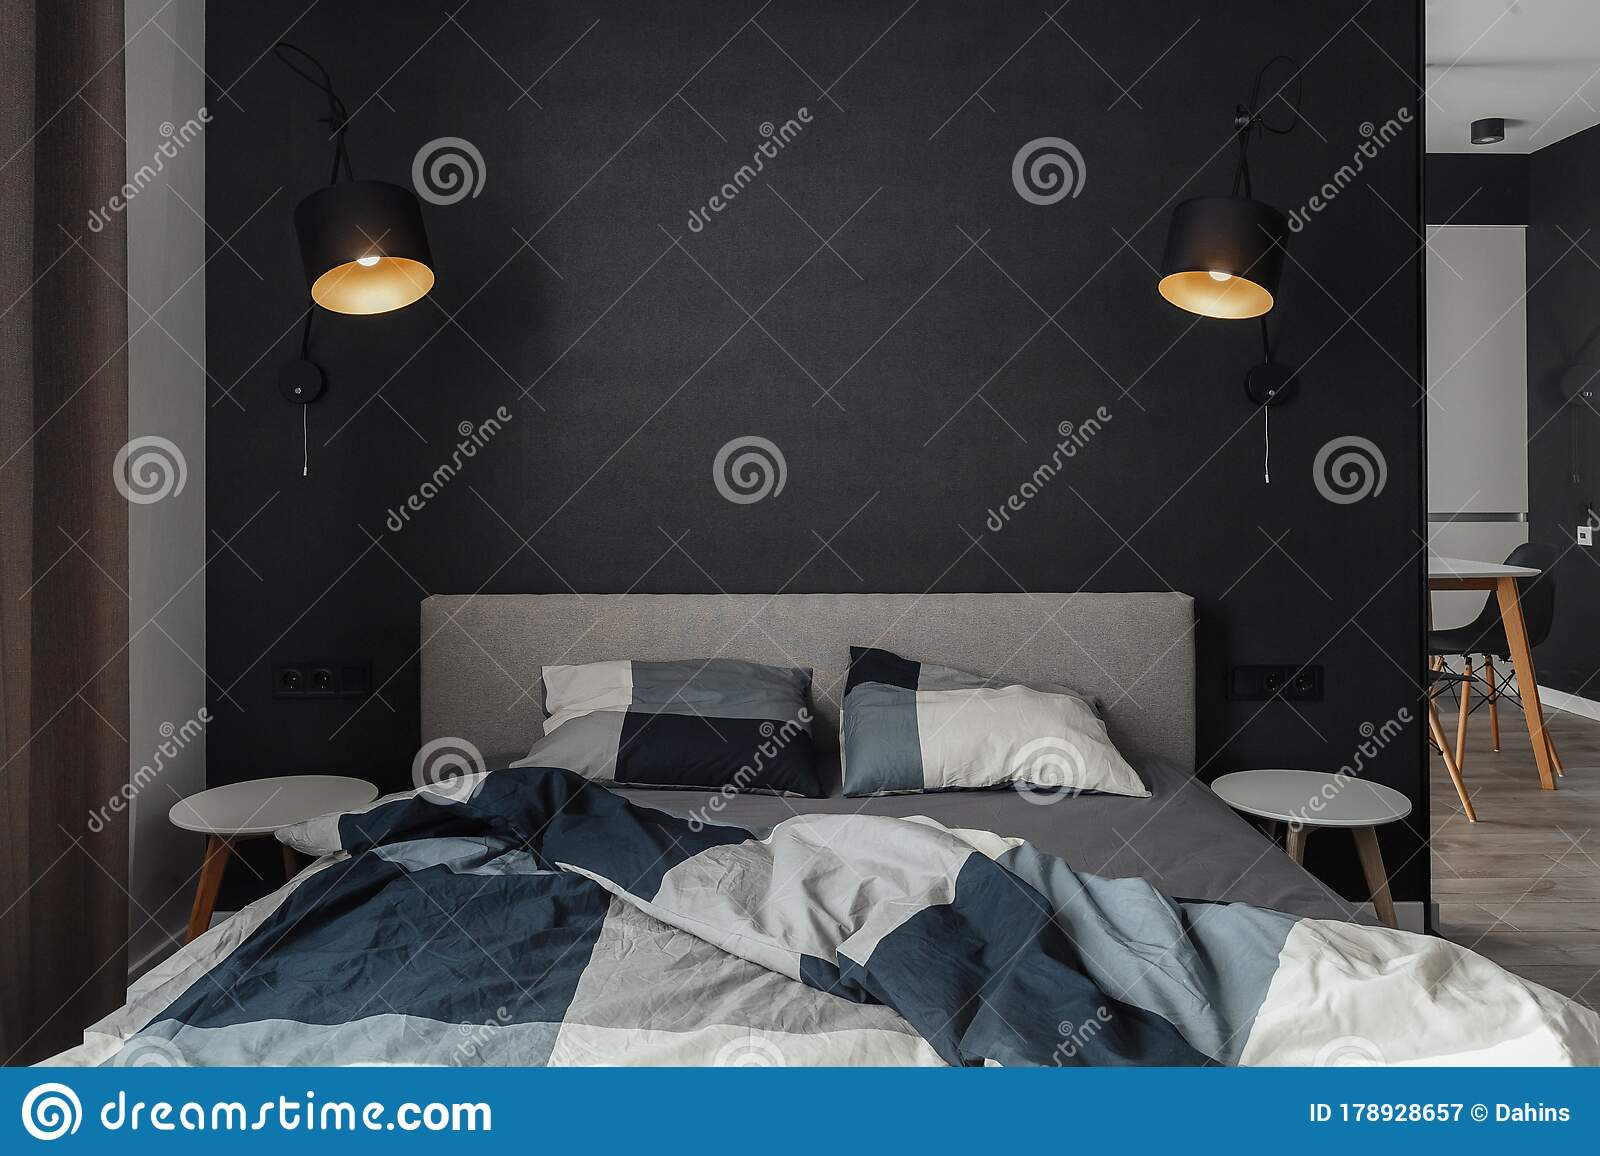 Black Wall With Lamps In The Bedroom Pillows And Bedding Comfort And Coziness At Home Stock Image Image Of Indoor Linen 178928657